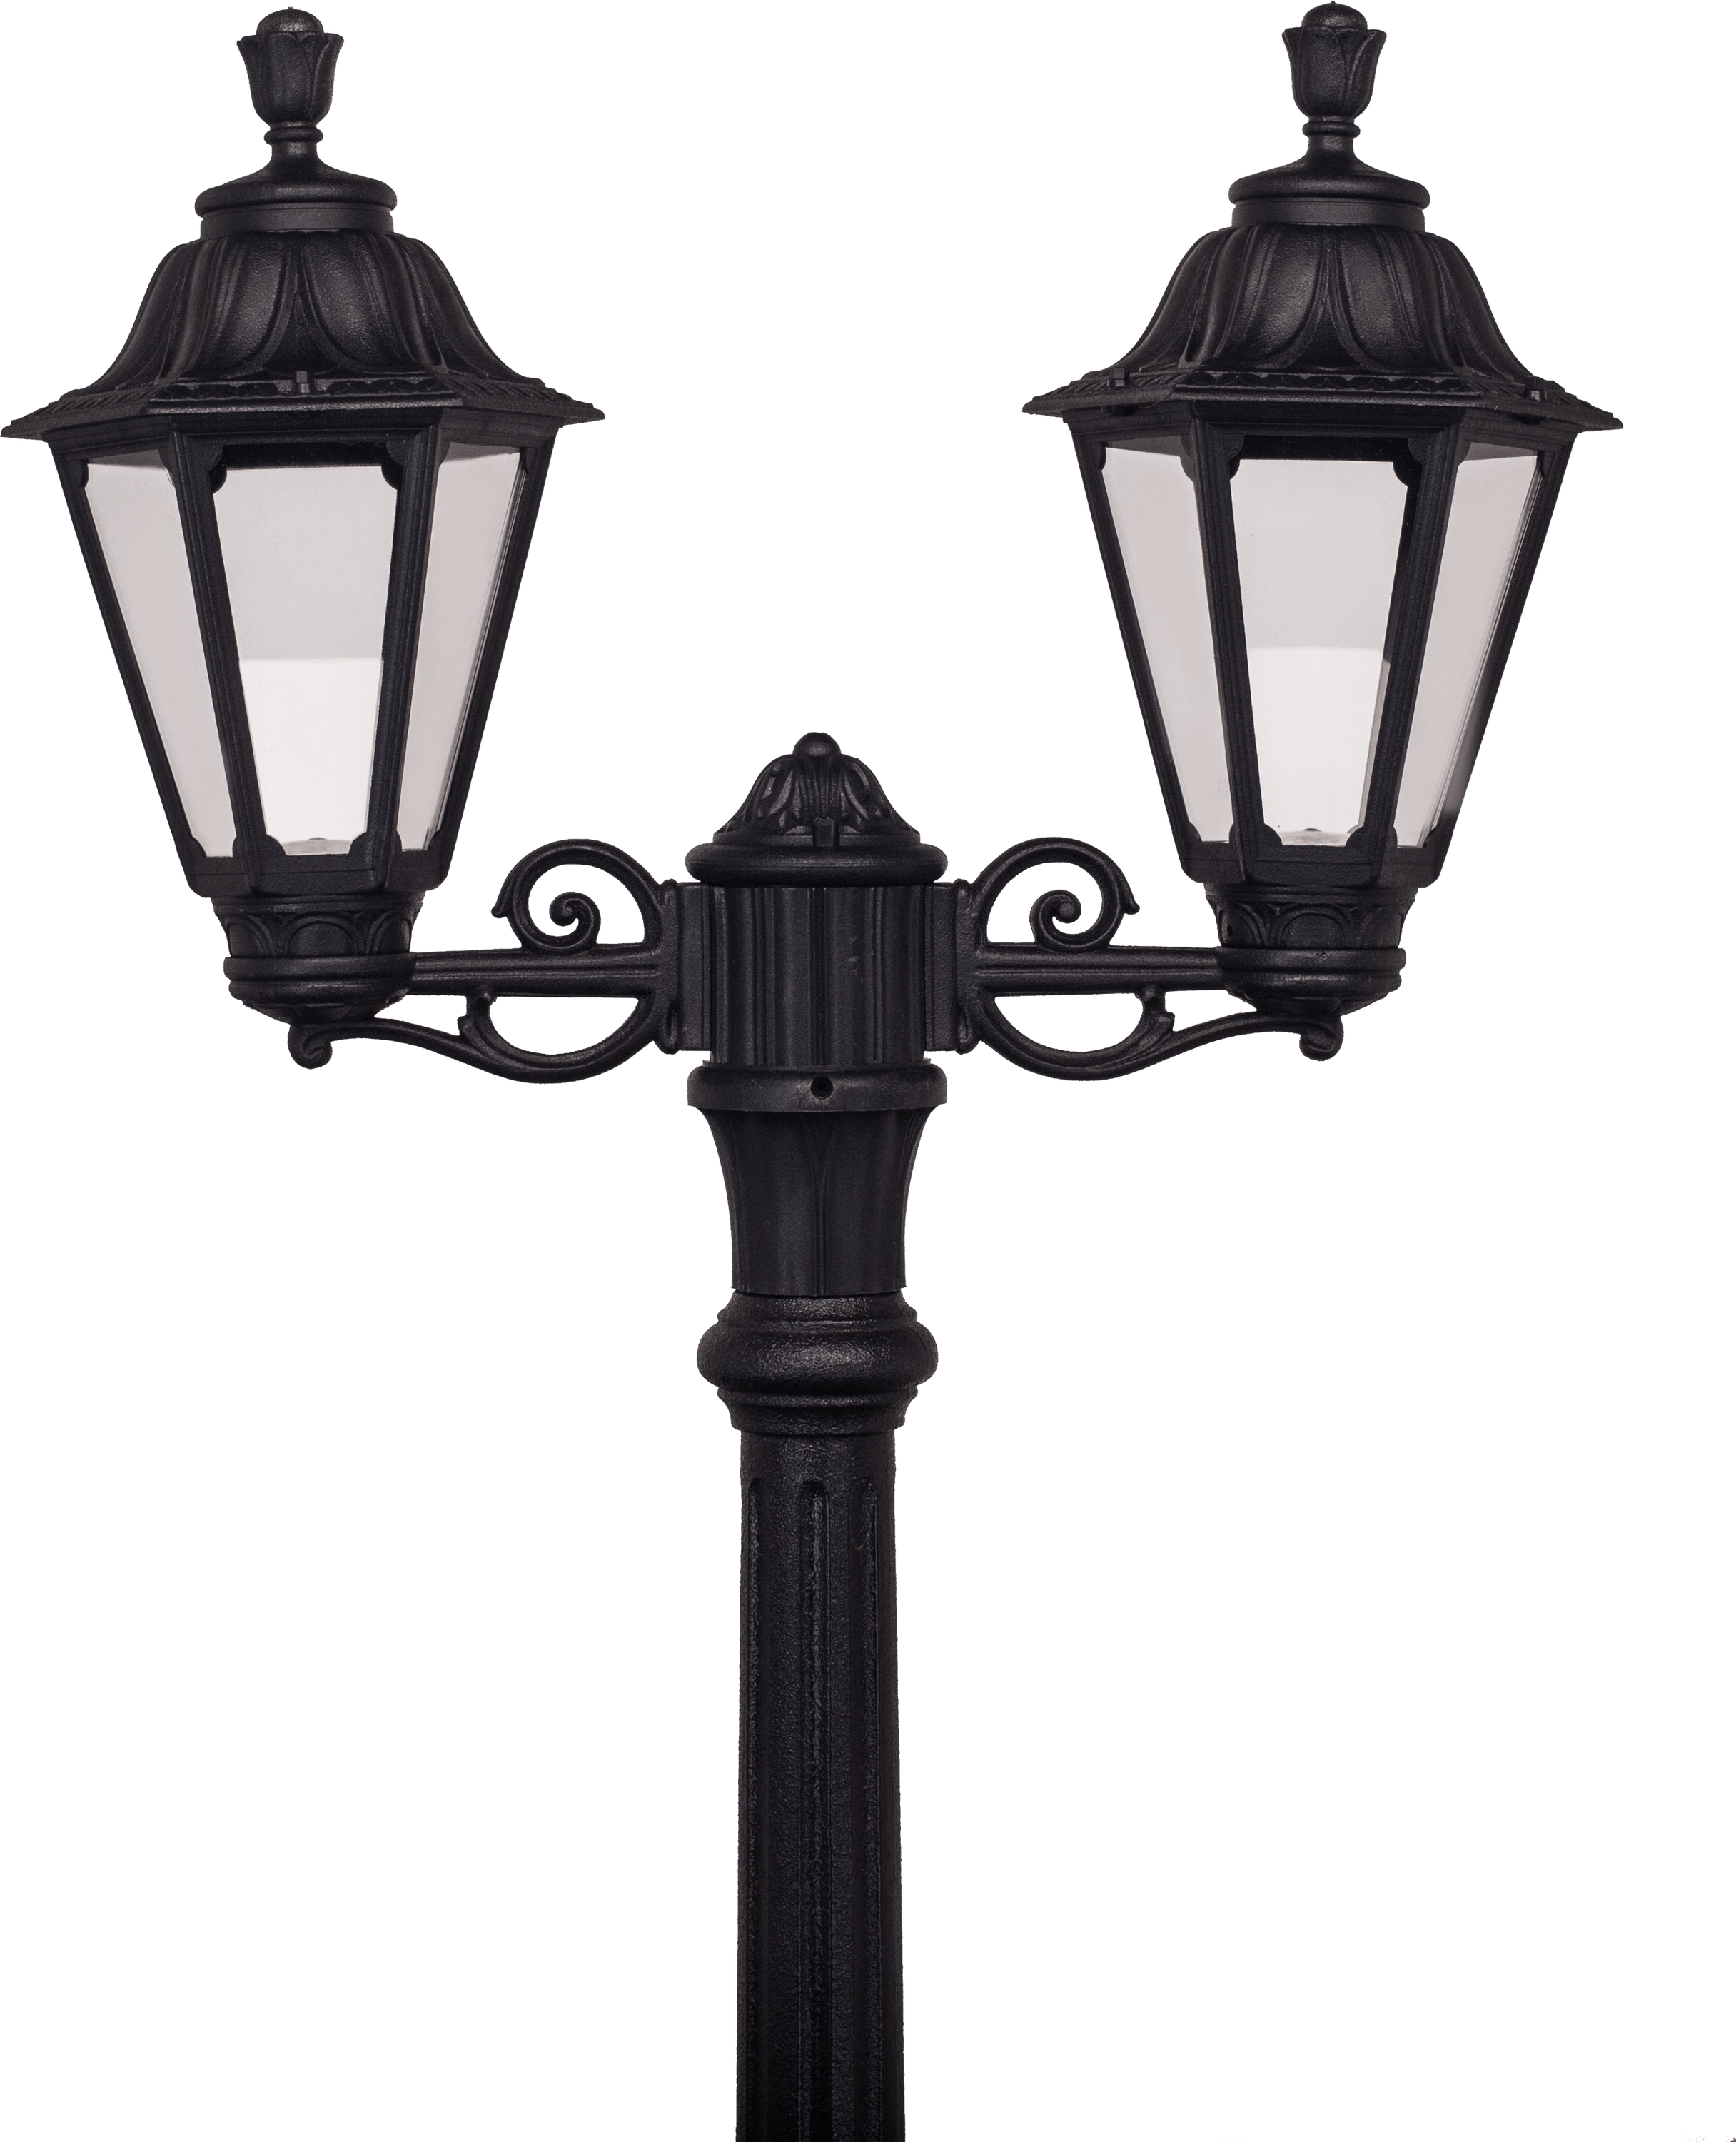 Double Streetlight - Streetlight PNG HD